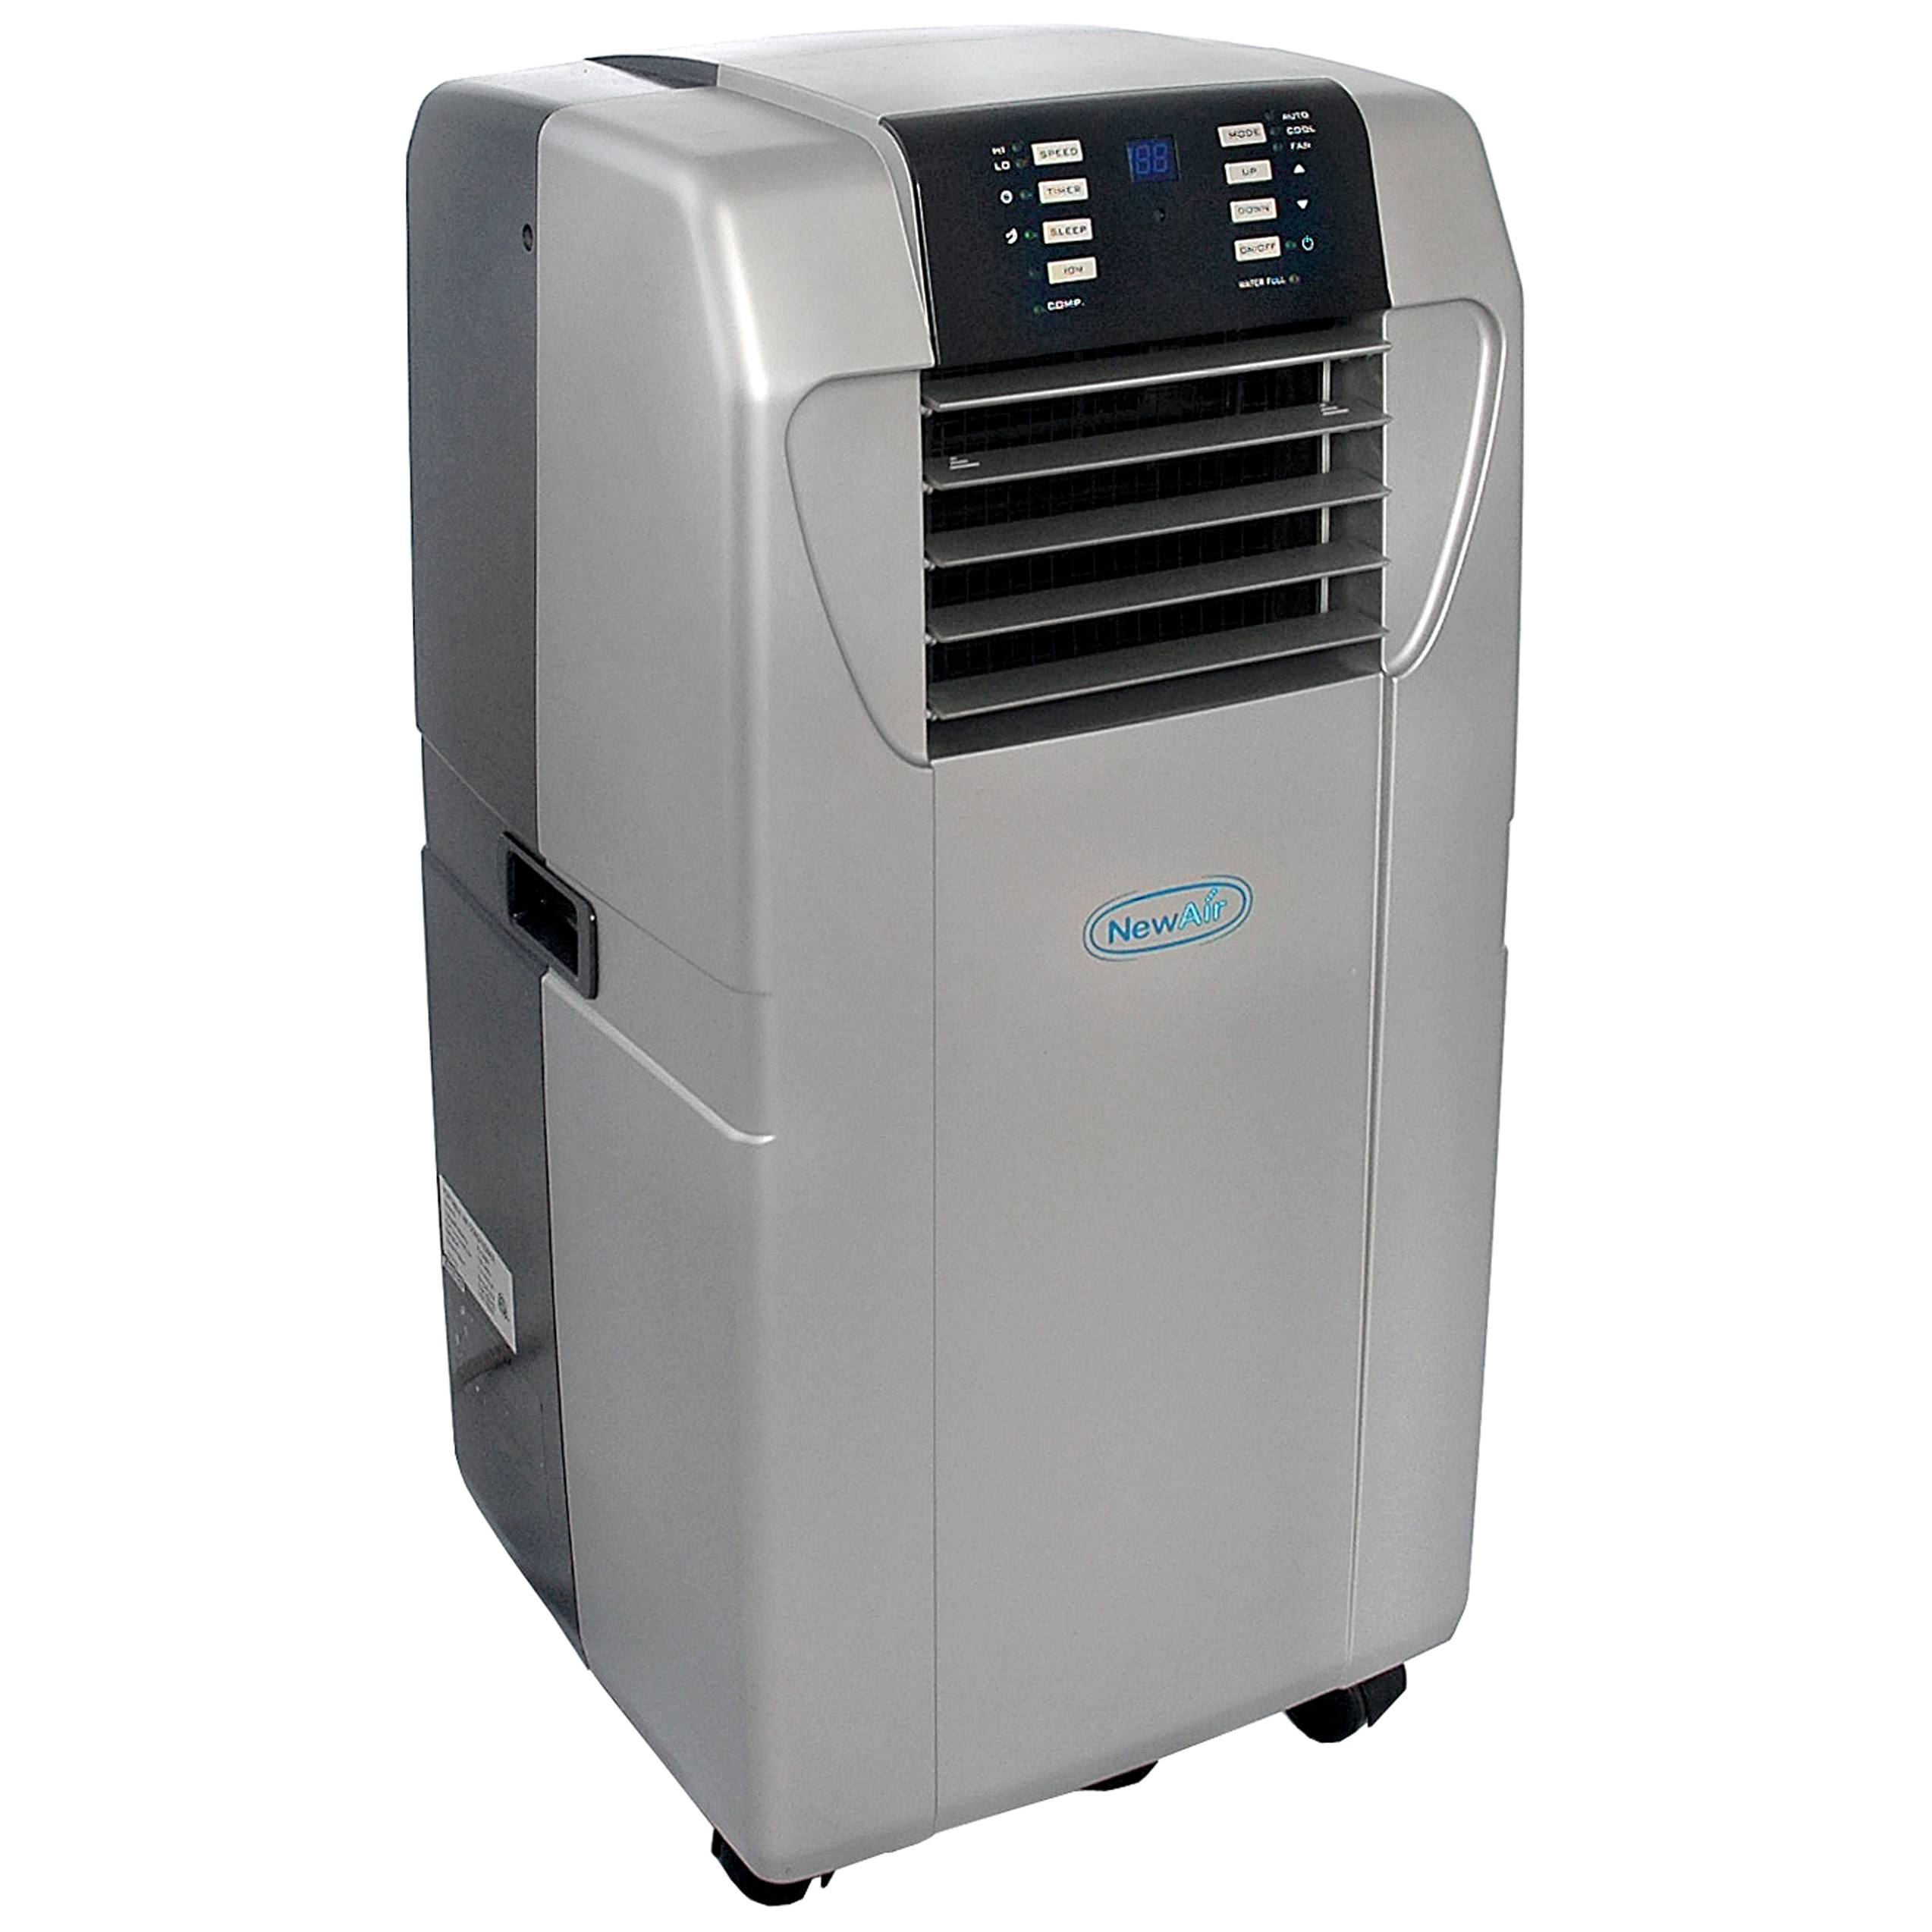 Portable Air Conditioner 12000 Btu Newair Ac 12000e 12000 Btu Portable Air Conditioner